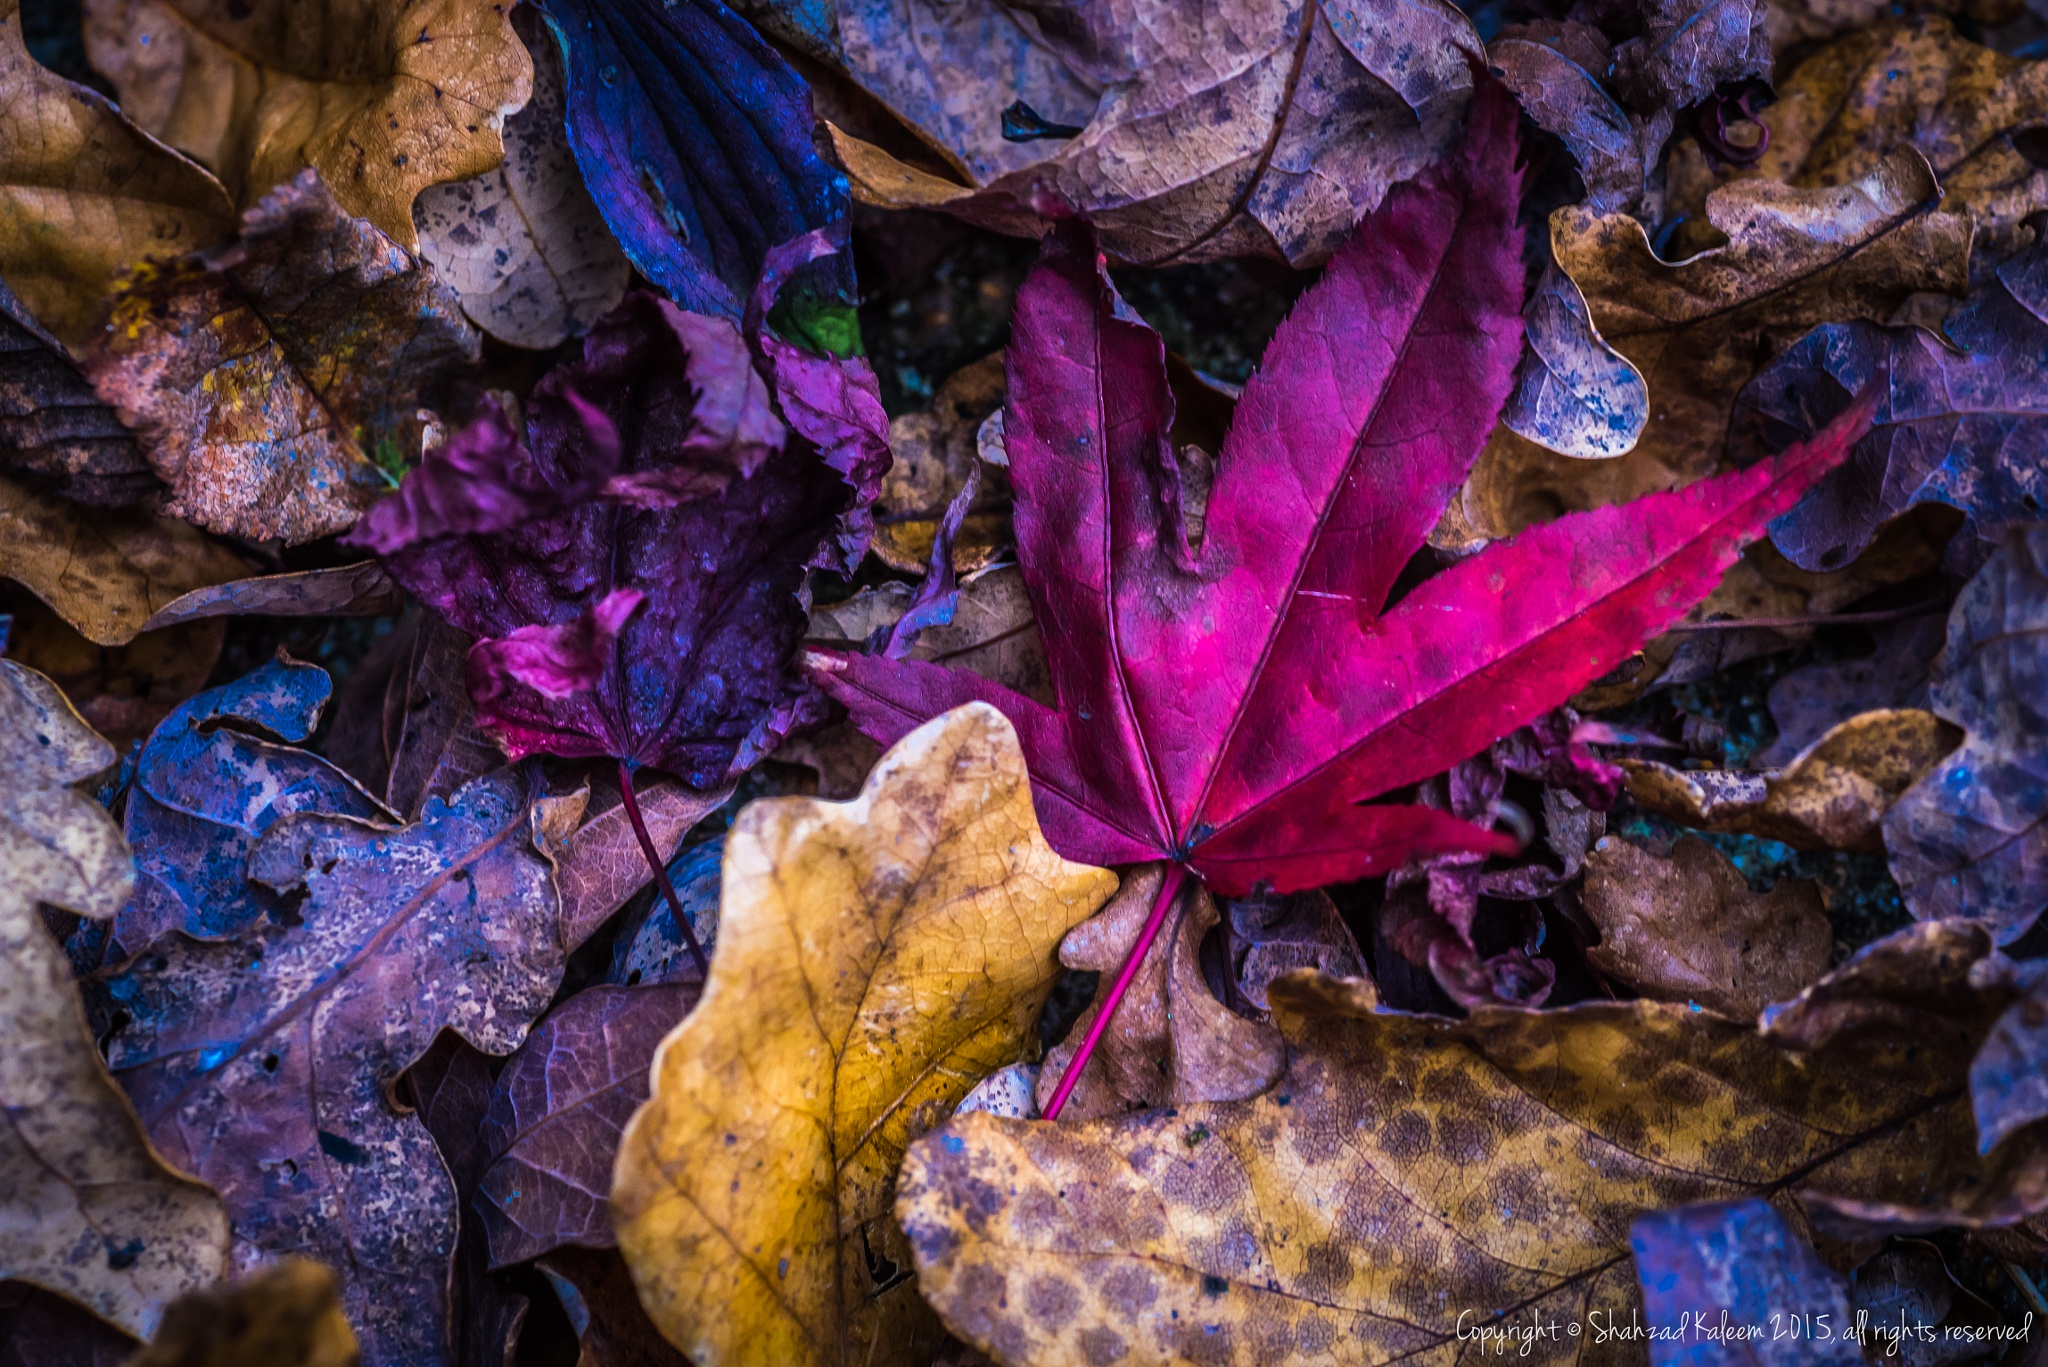 Autumn Leaves #3 by Shahzad Kaleem